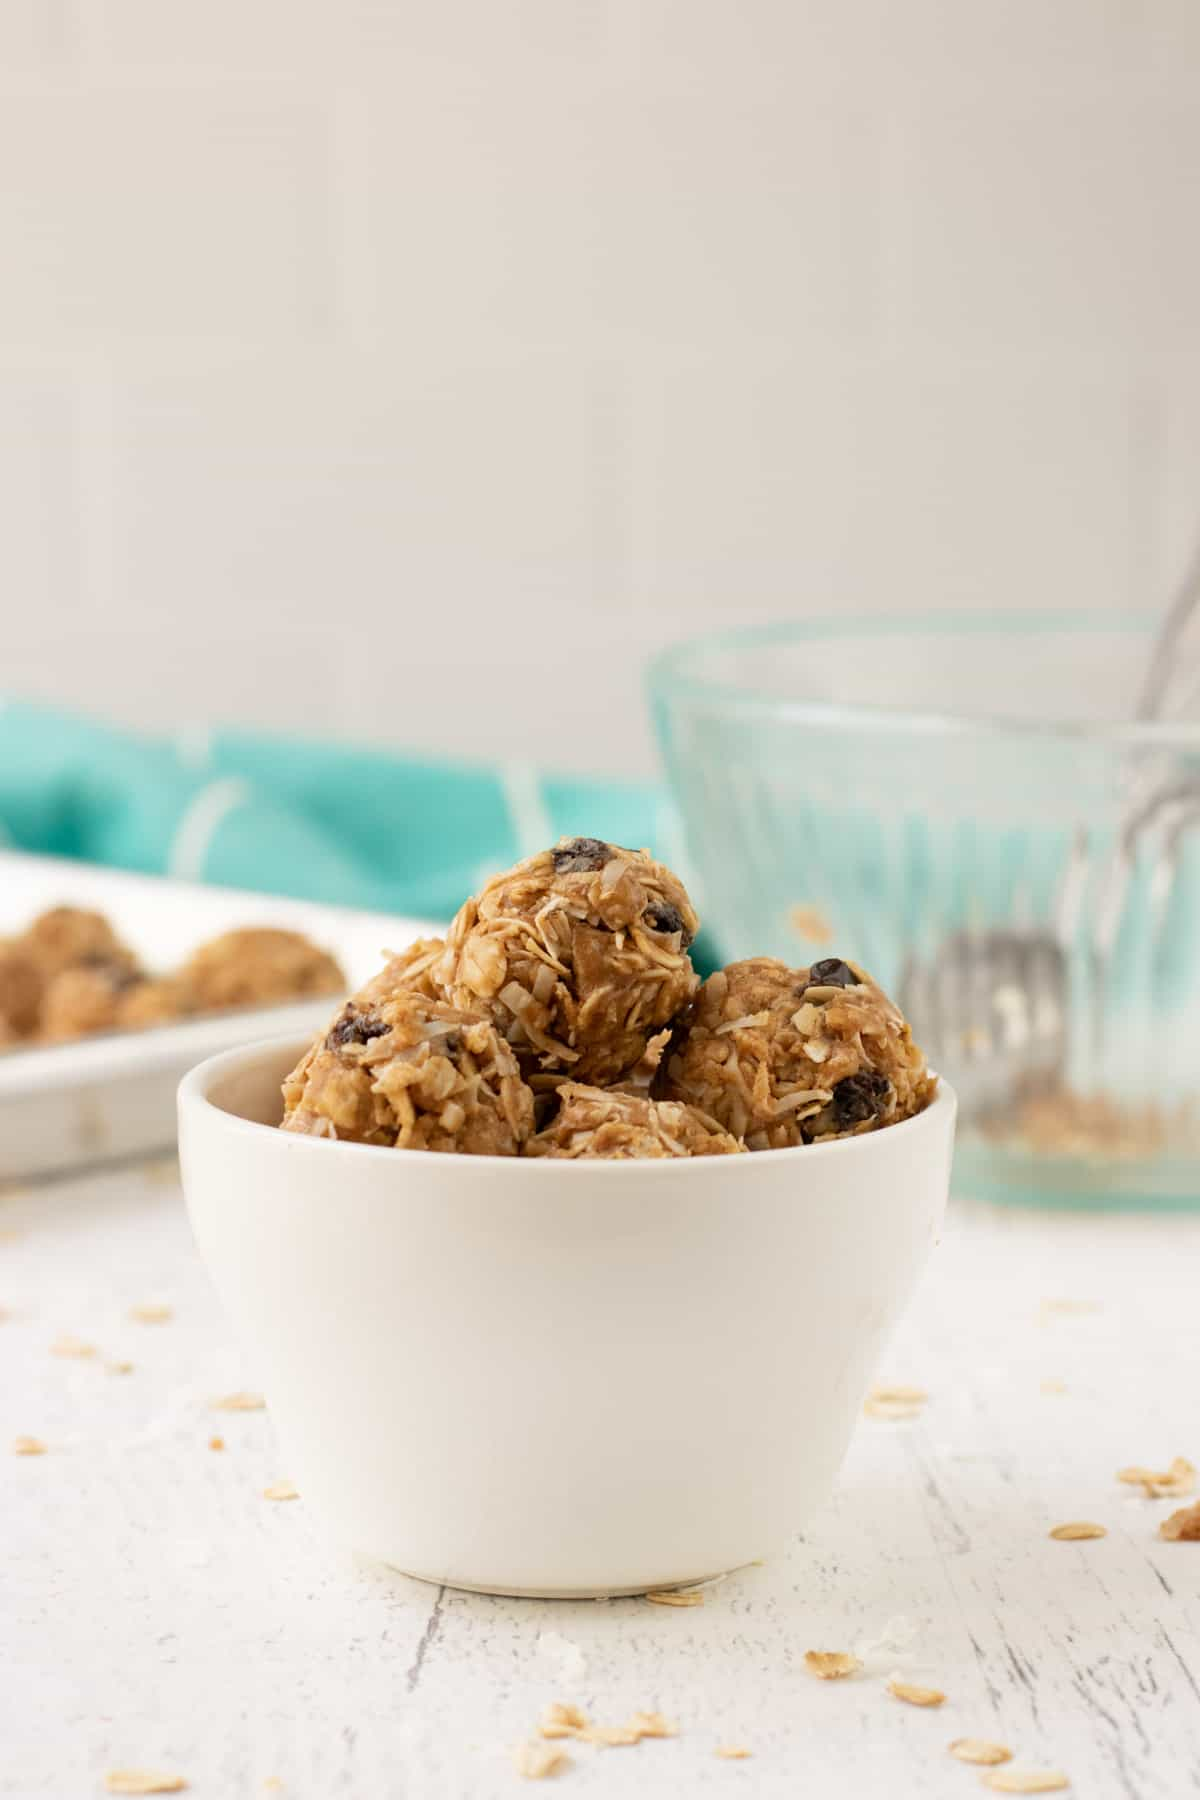 No Bake Peanut Butter Oatmeal Balls in a white bowl with tray of balls and empty ingredient bowl and aqua linen in background.